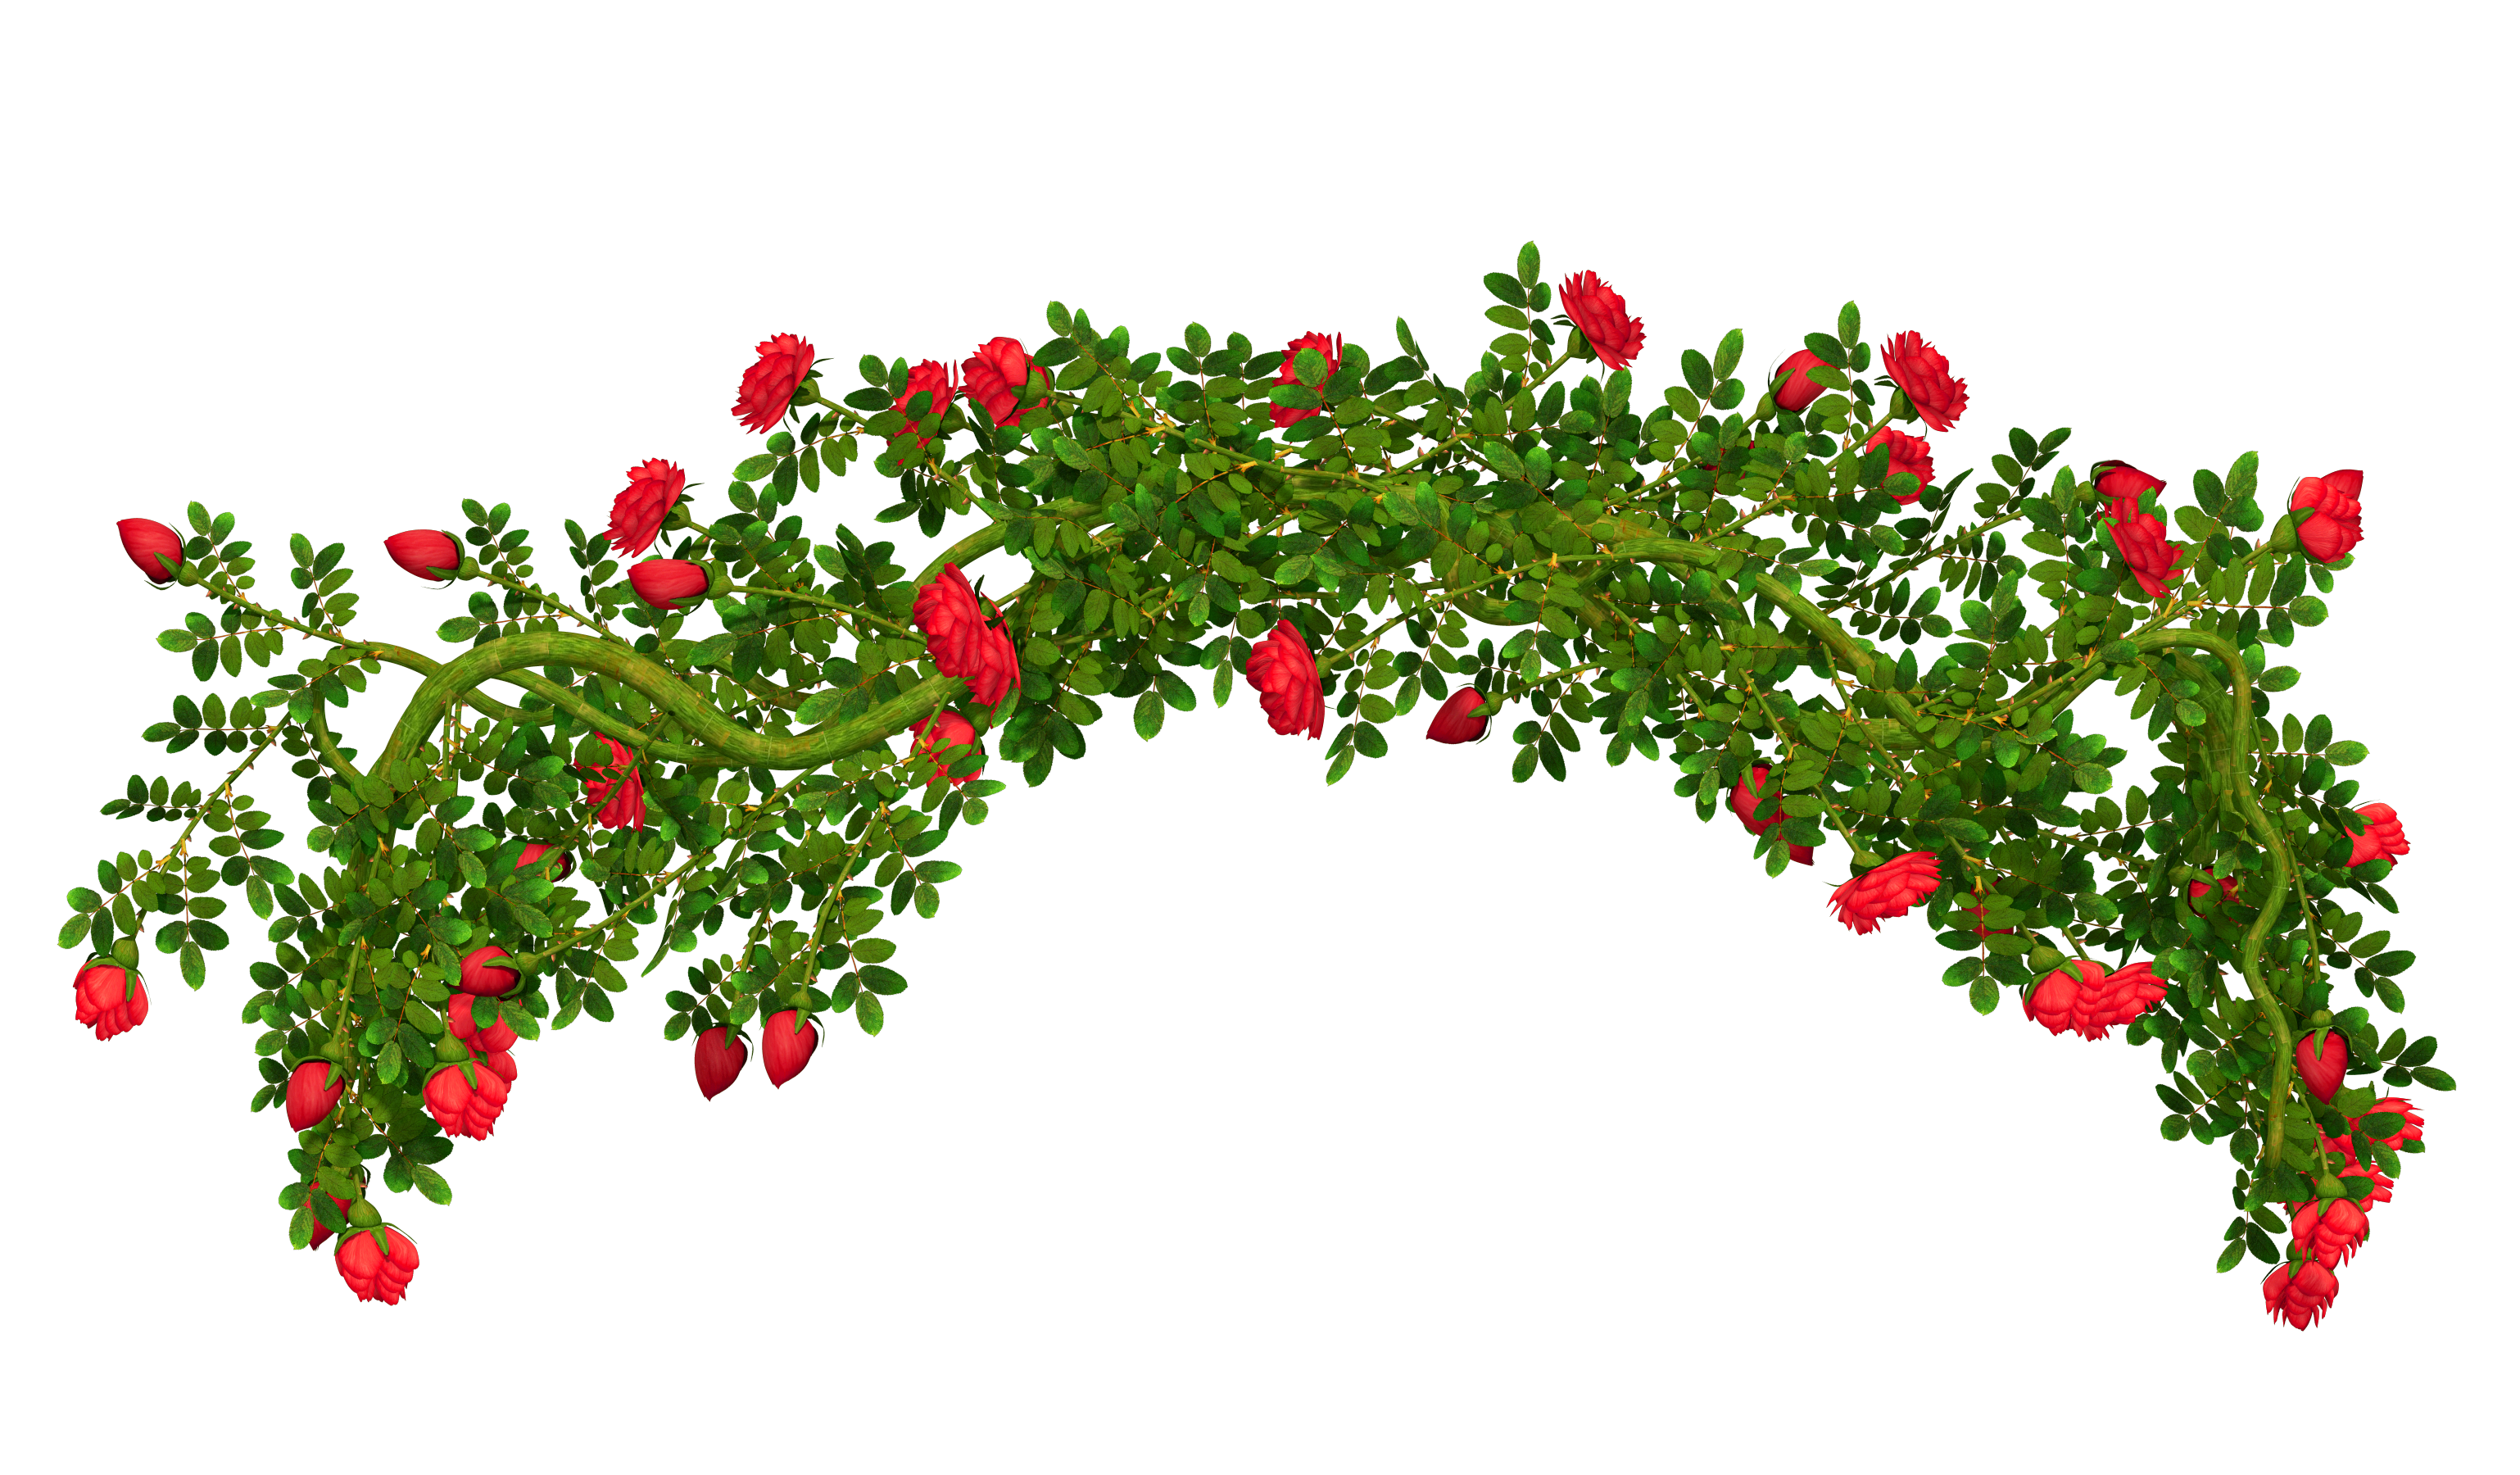 Garden clipart bush. Rosebush element png picture